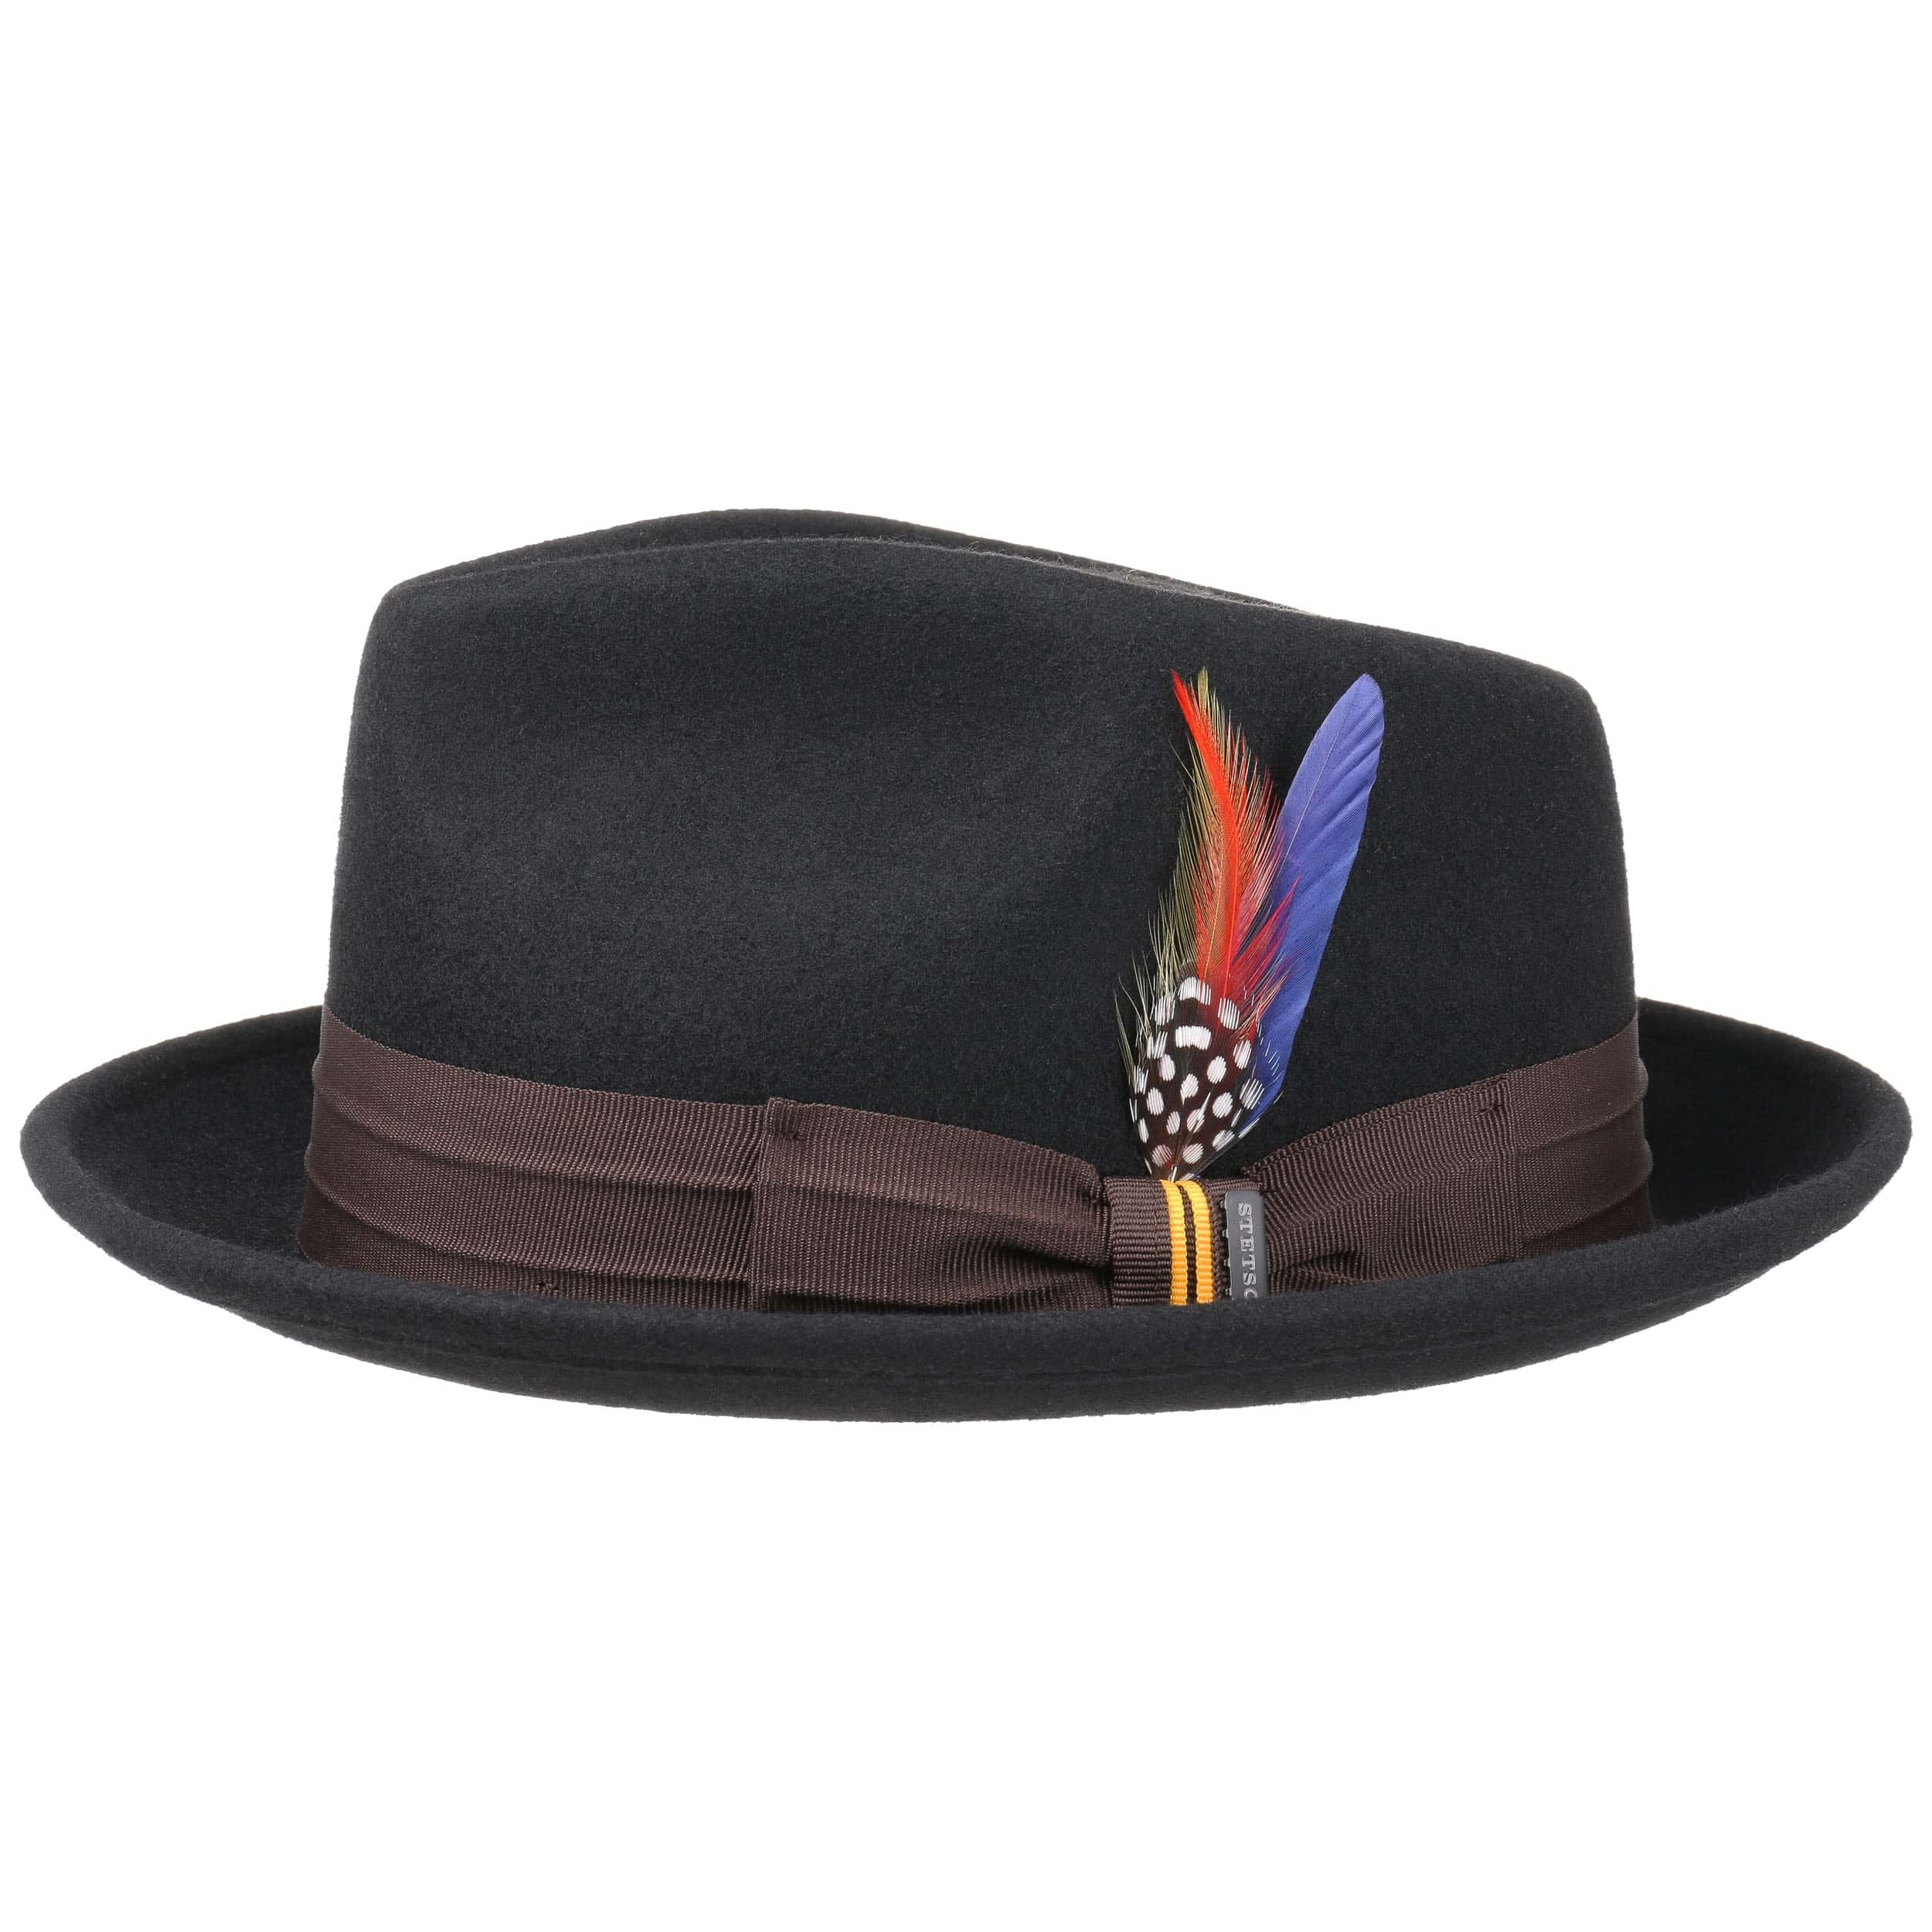 090a8e80ca5579 Valema Player Hat Wool Felt Hat by Stetson - 69,00 £